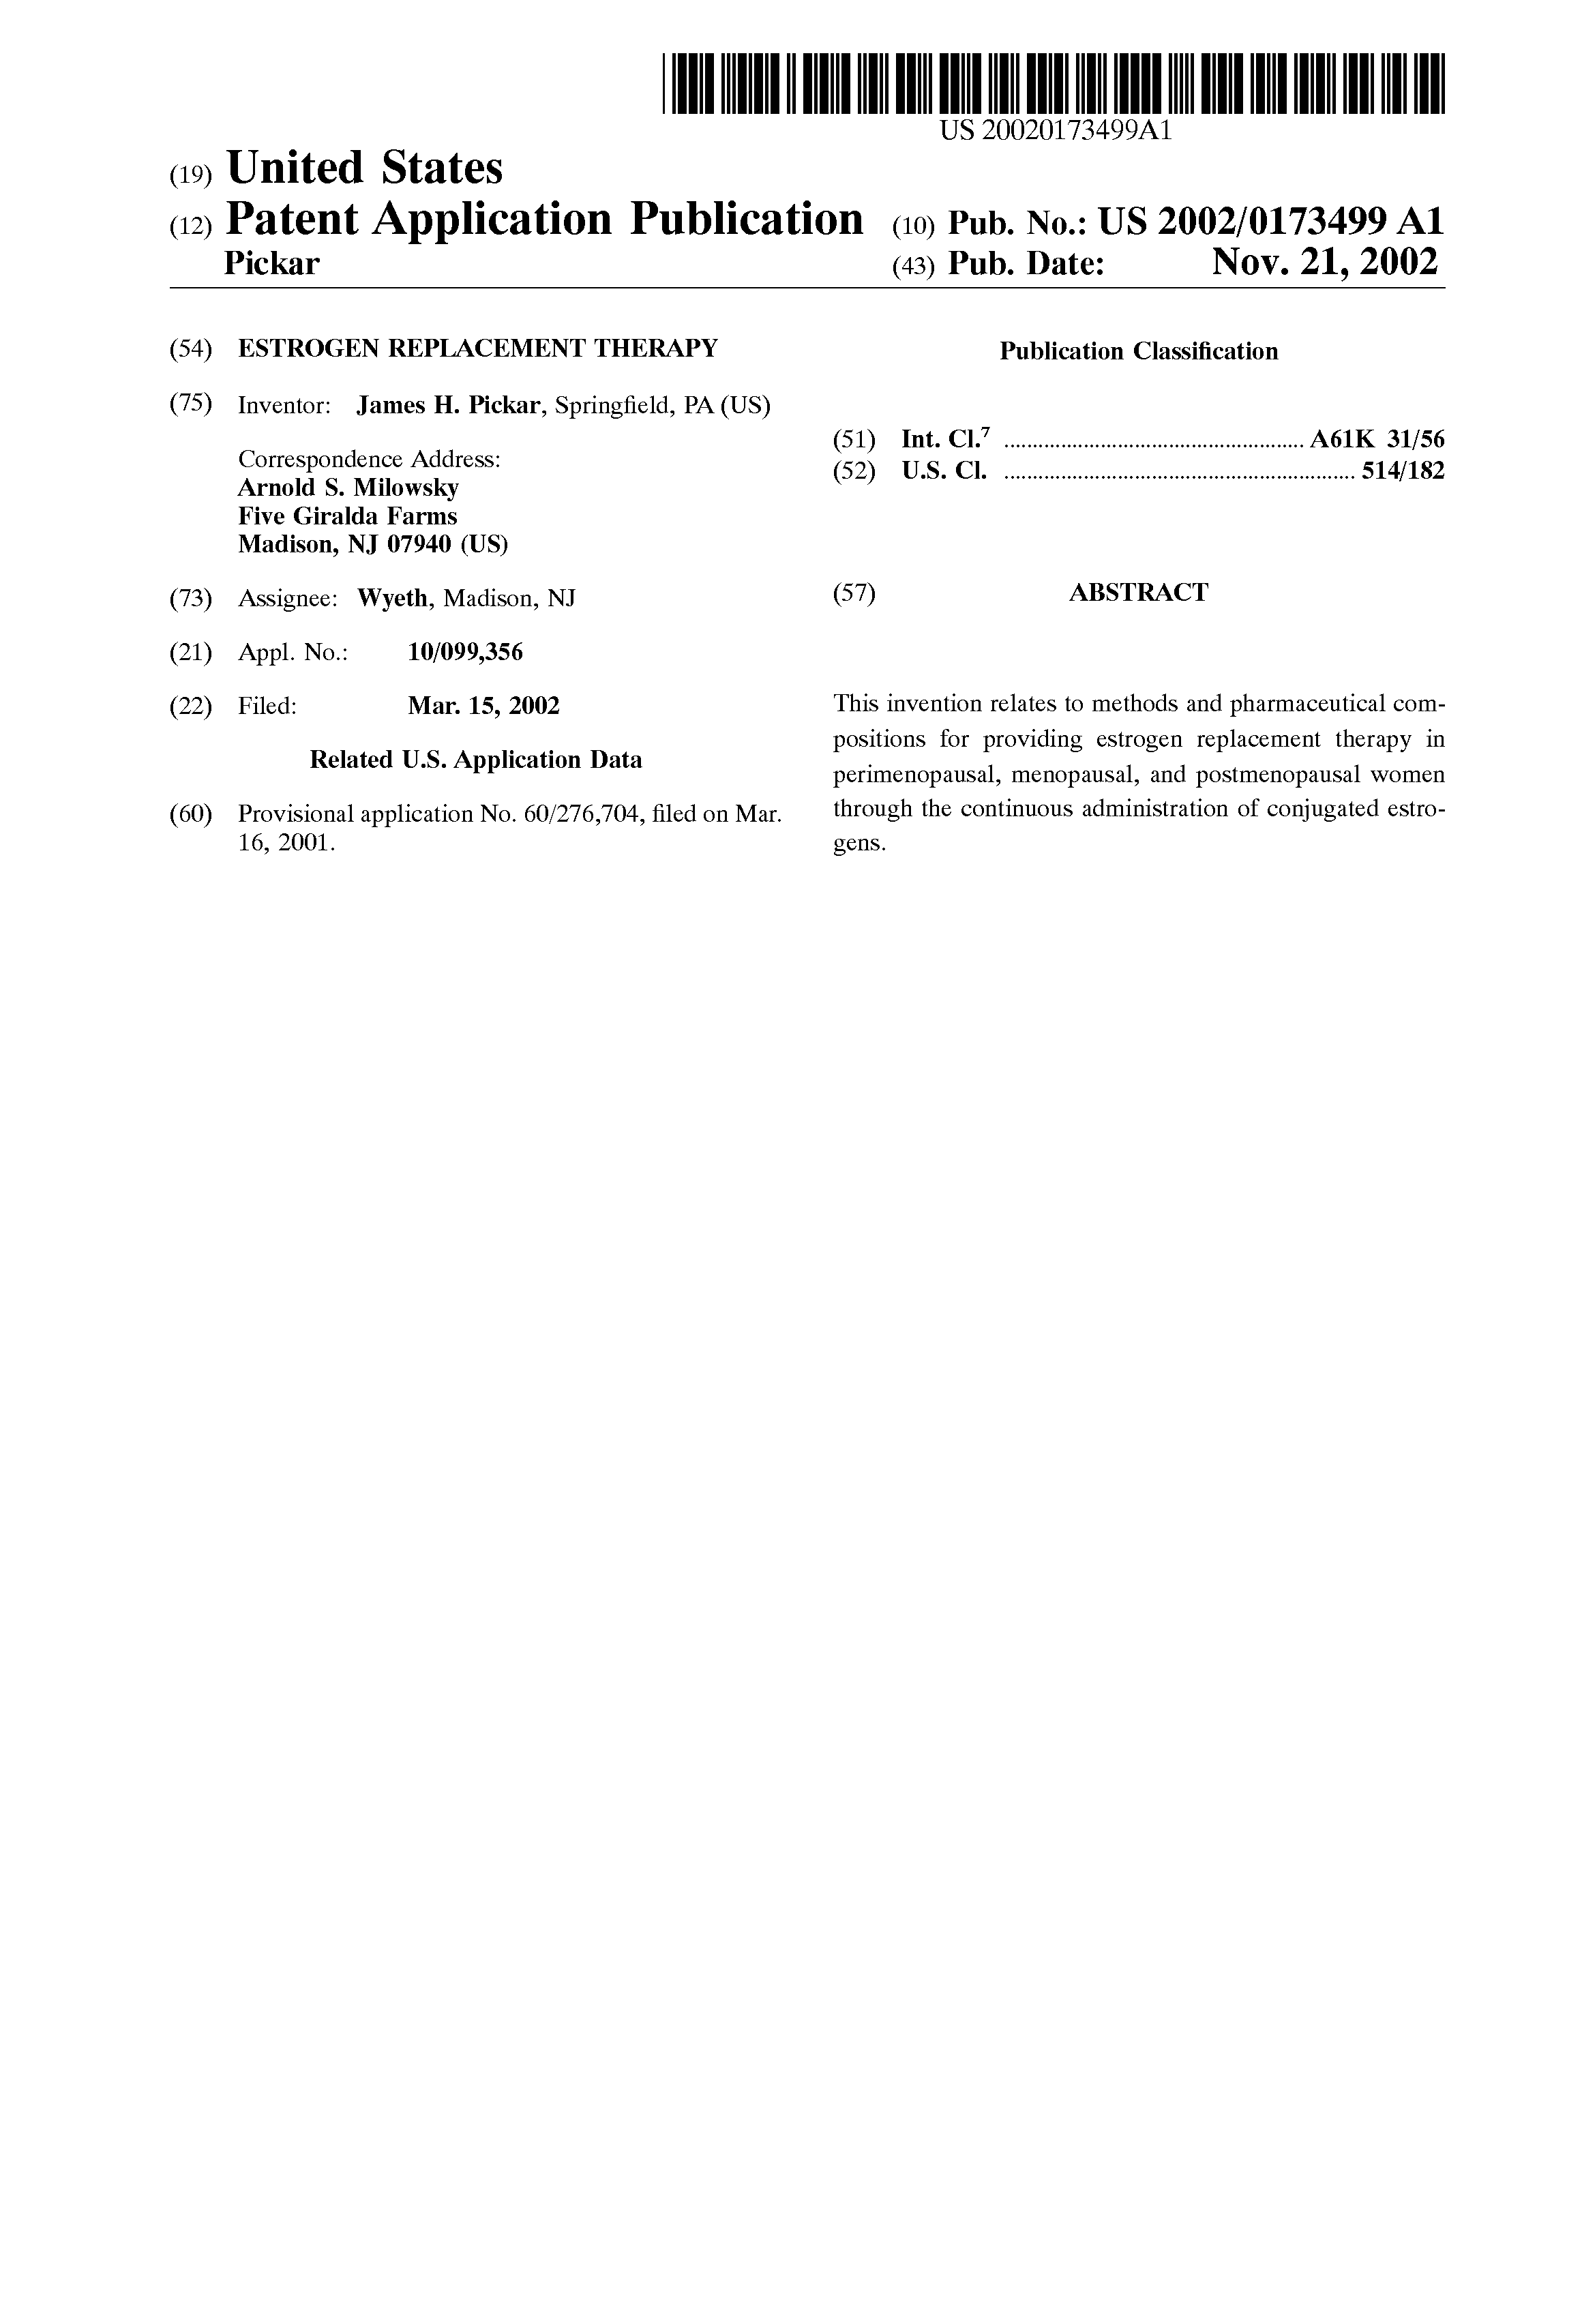 Estrace 0.5 mg tablet.doc - Patent Drawing